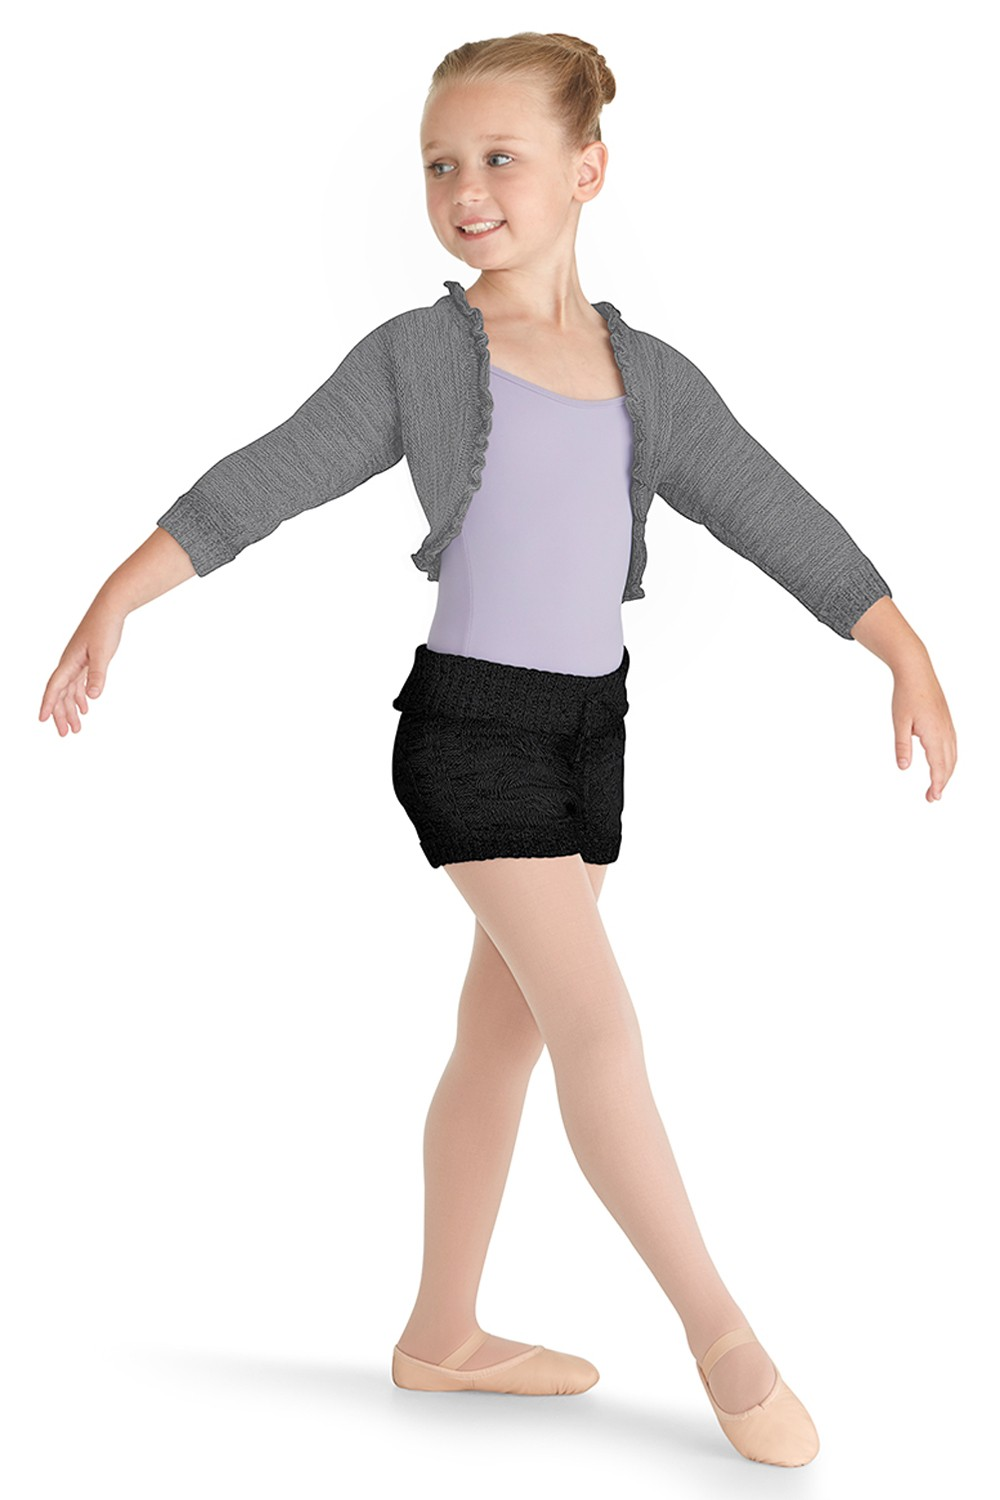 Cable Knit Short Children's Dance Shorts